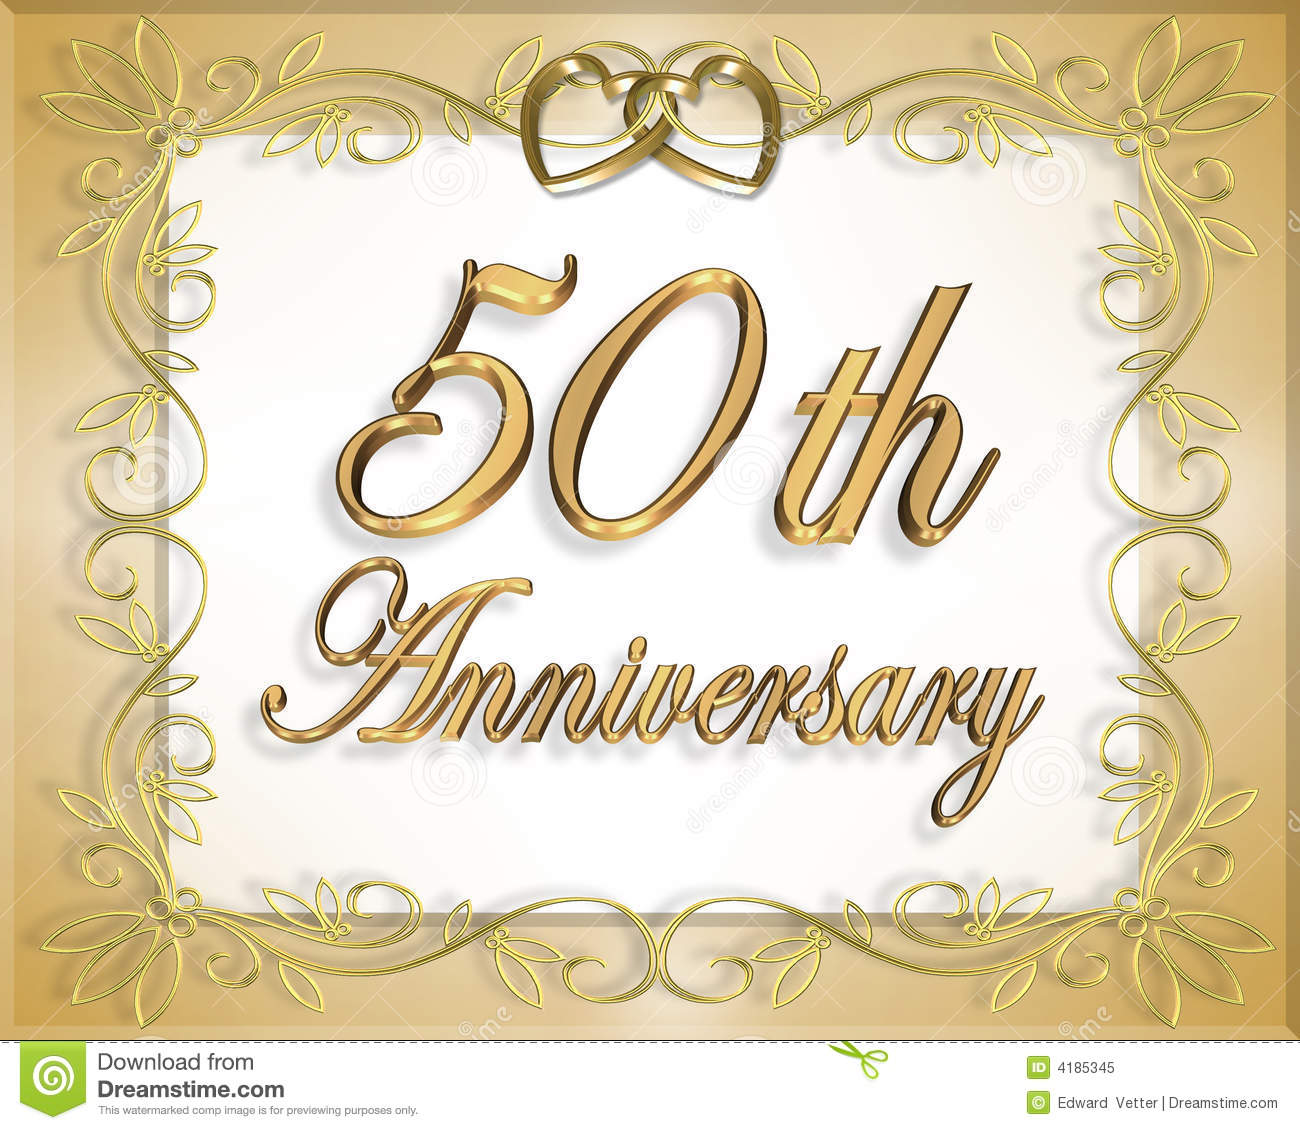 50th wedding anniversary cards free printable - Gecce.tackletarts.co